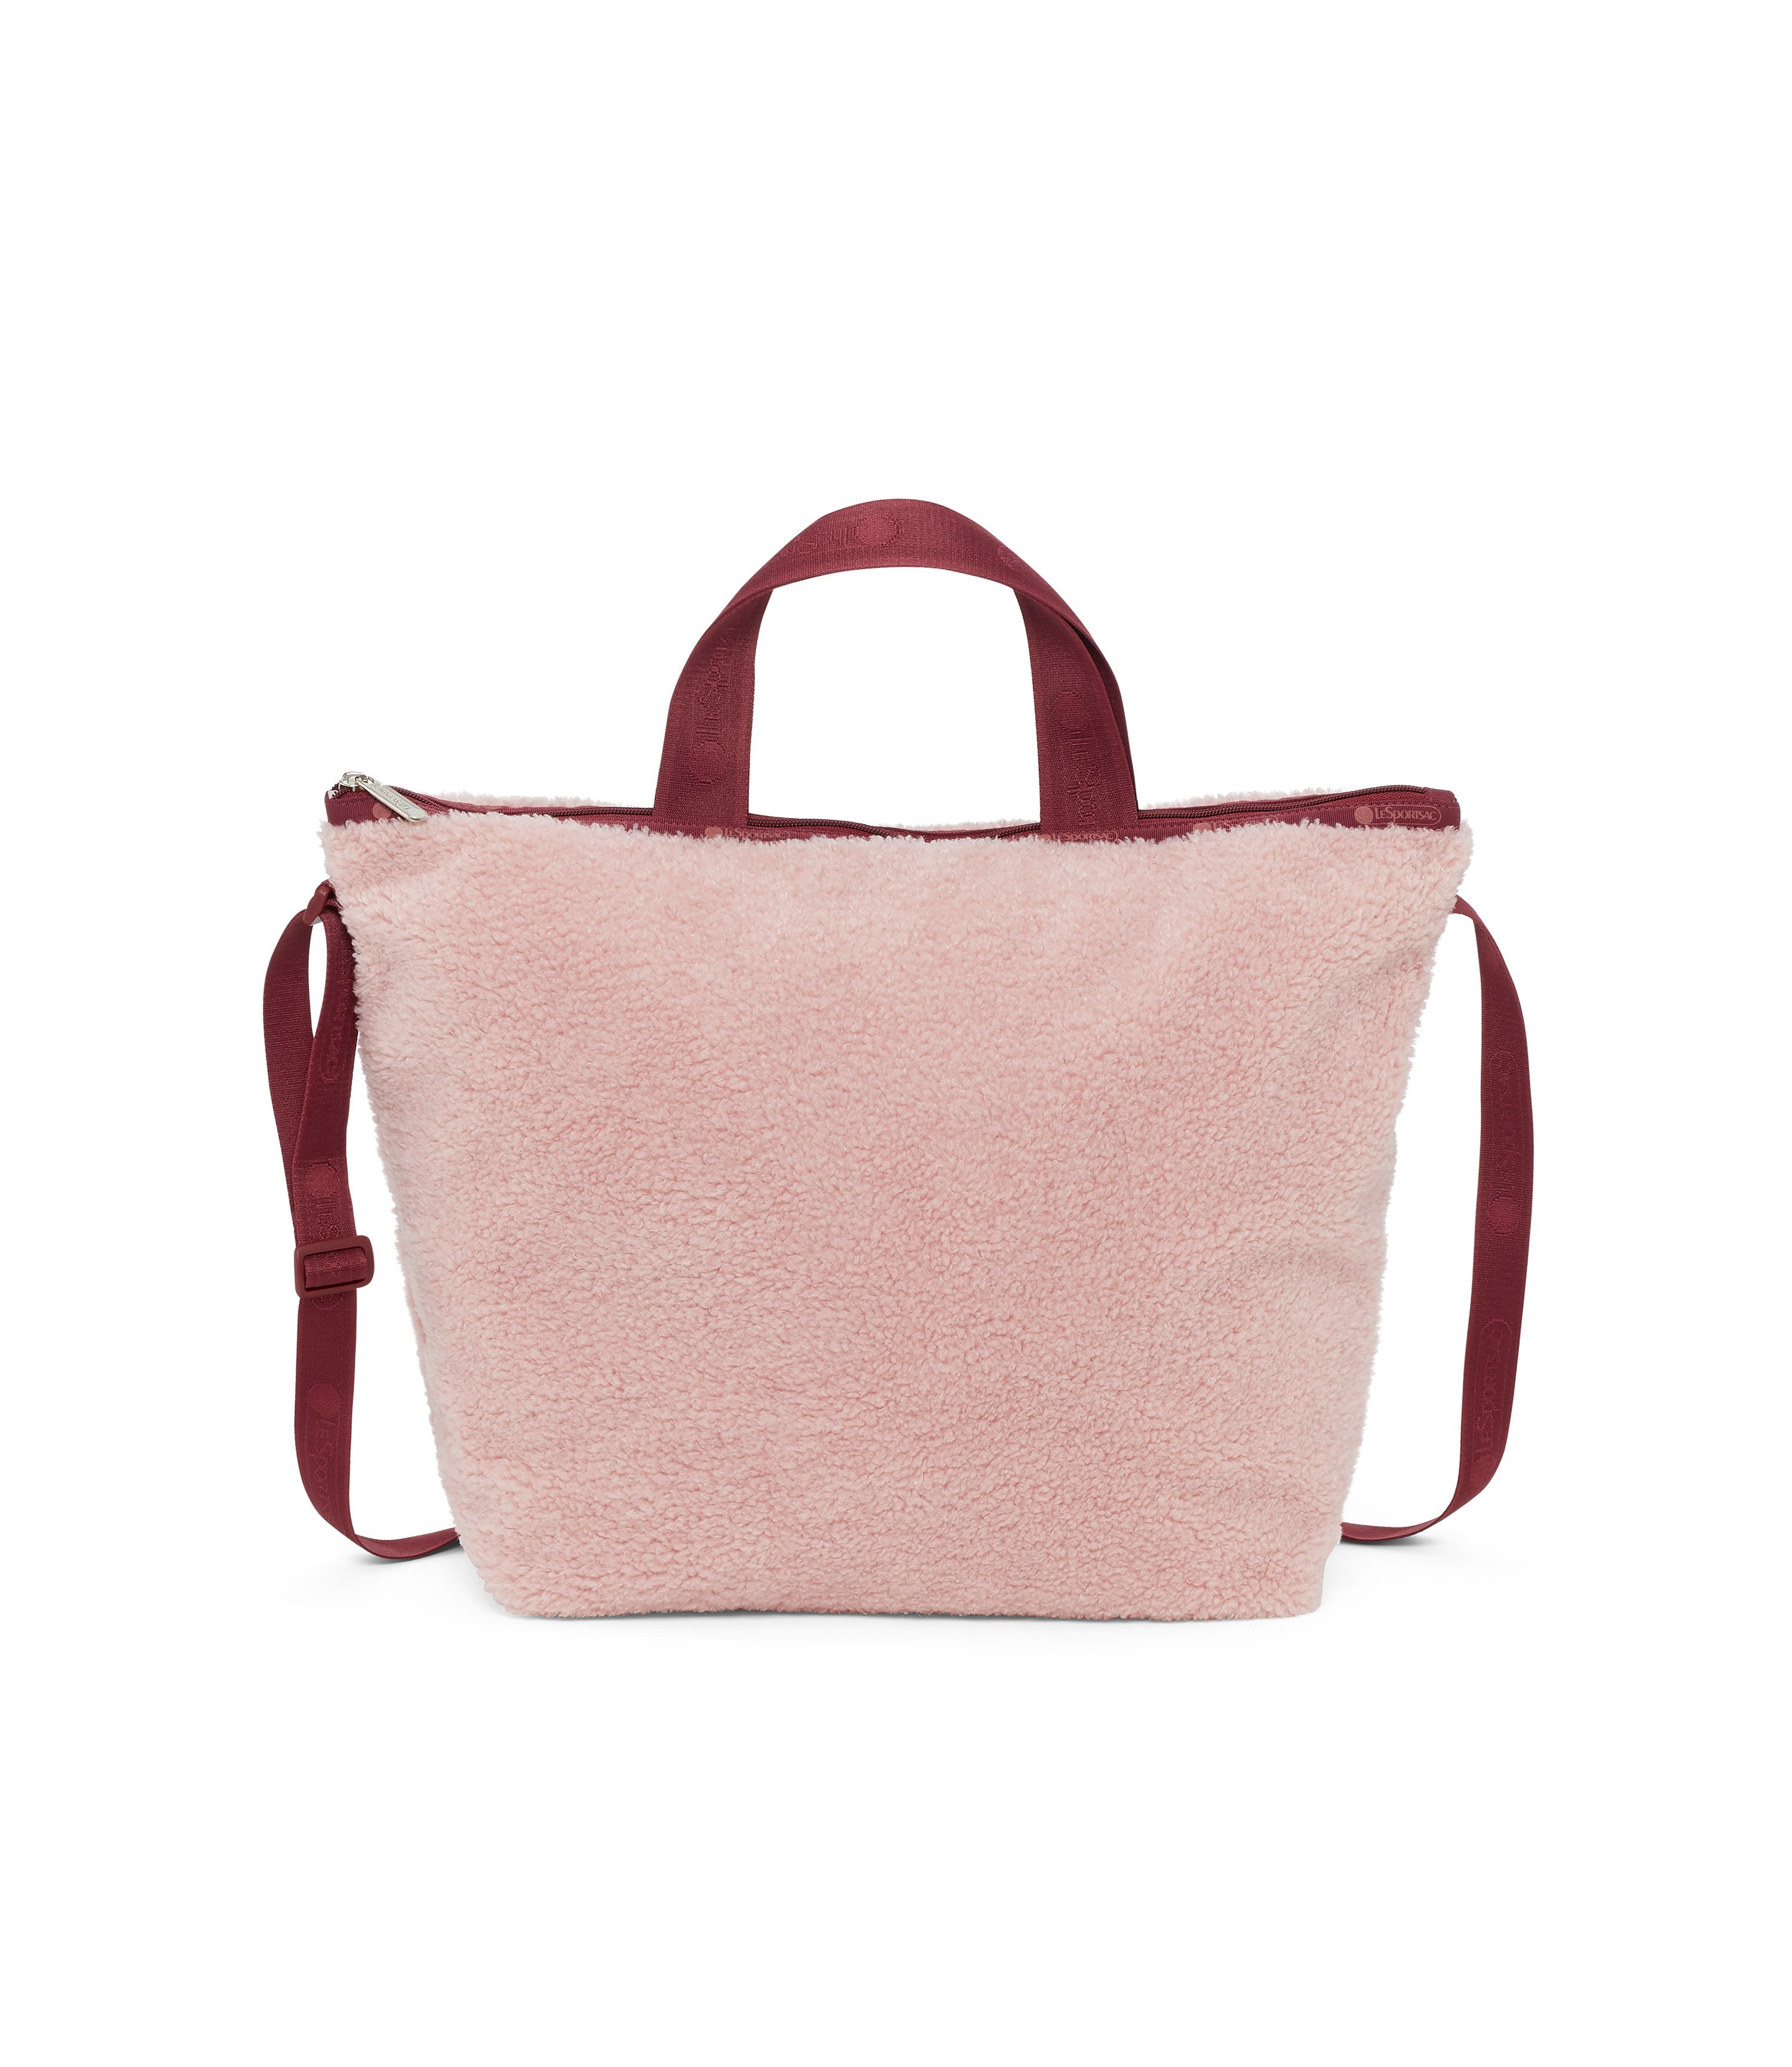 Easy Carry Tote, Nylon Tote Bags, LeSportsac, Pink Sherpa